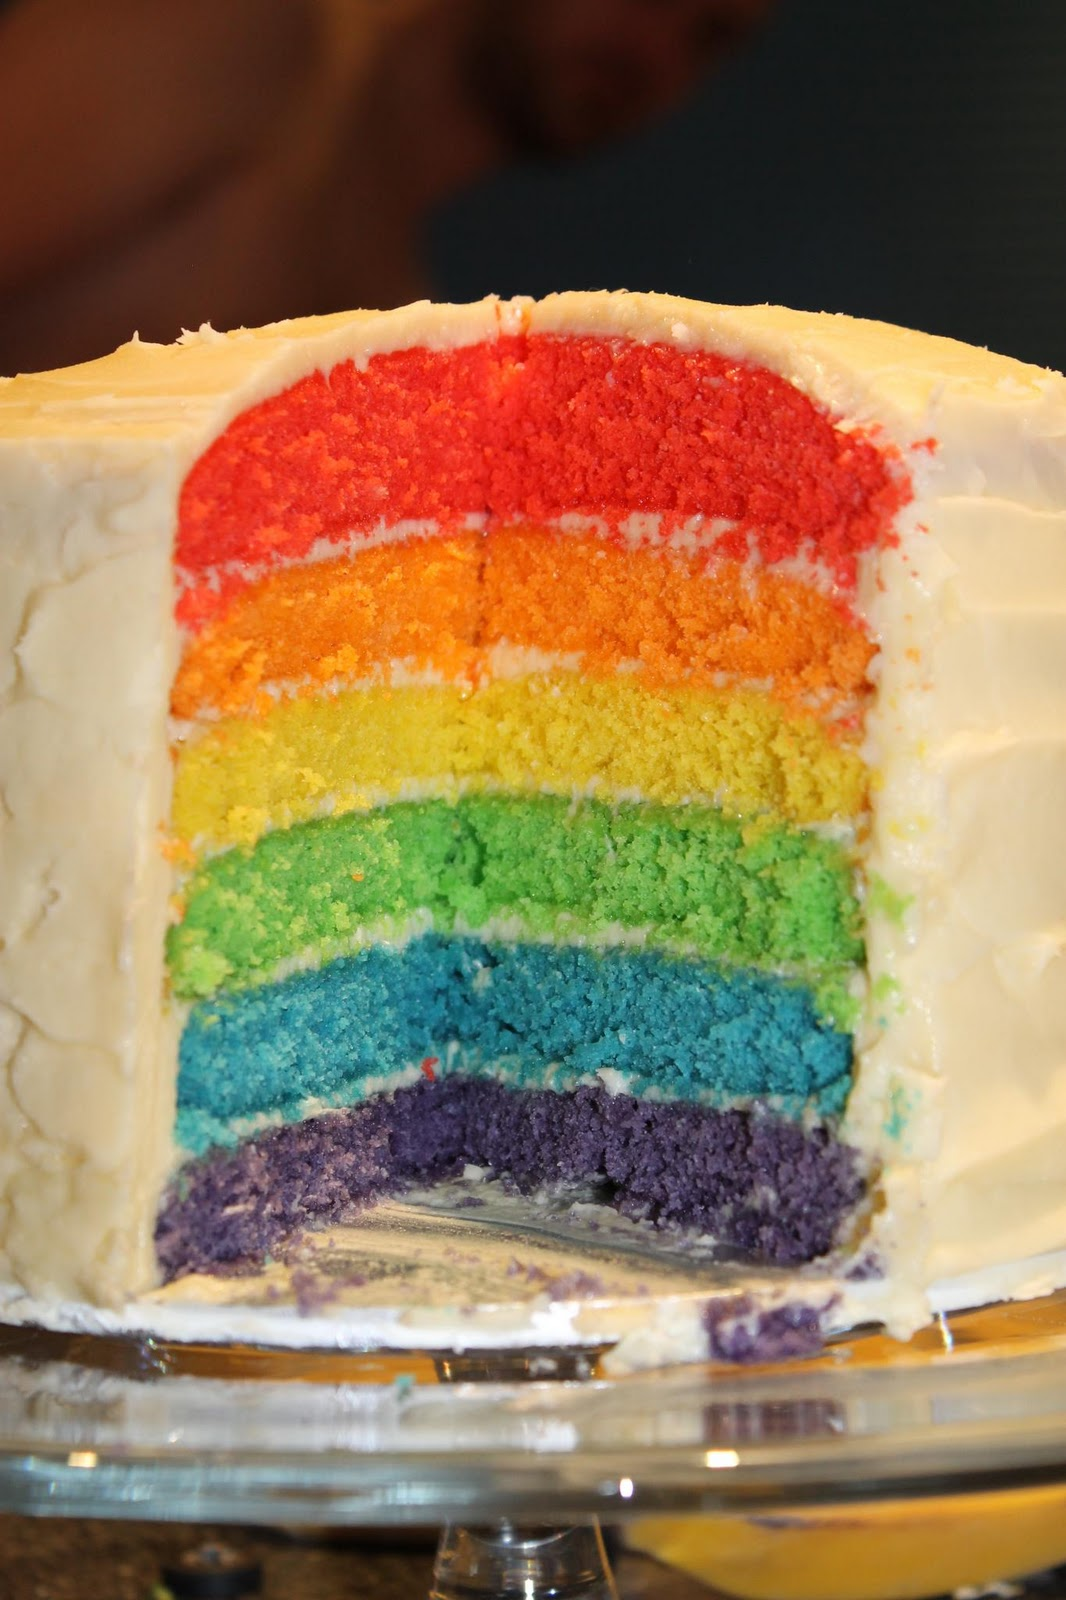 Sweetie Darling A Lovely Rainbow Cake And White Chocolate